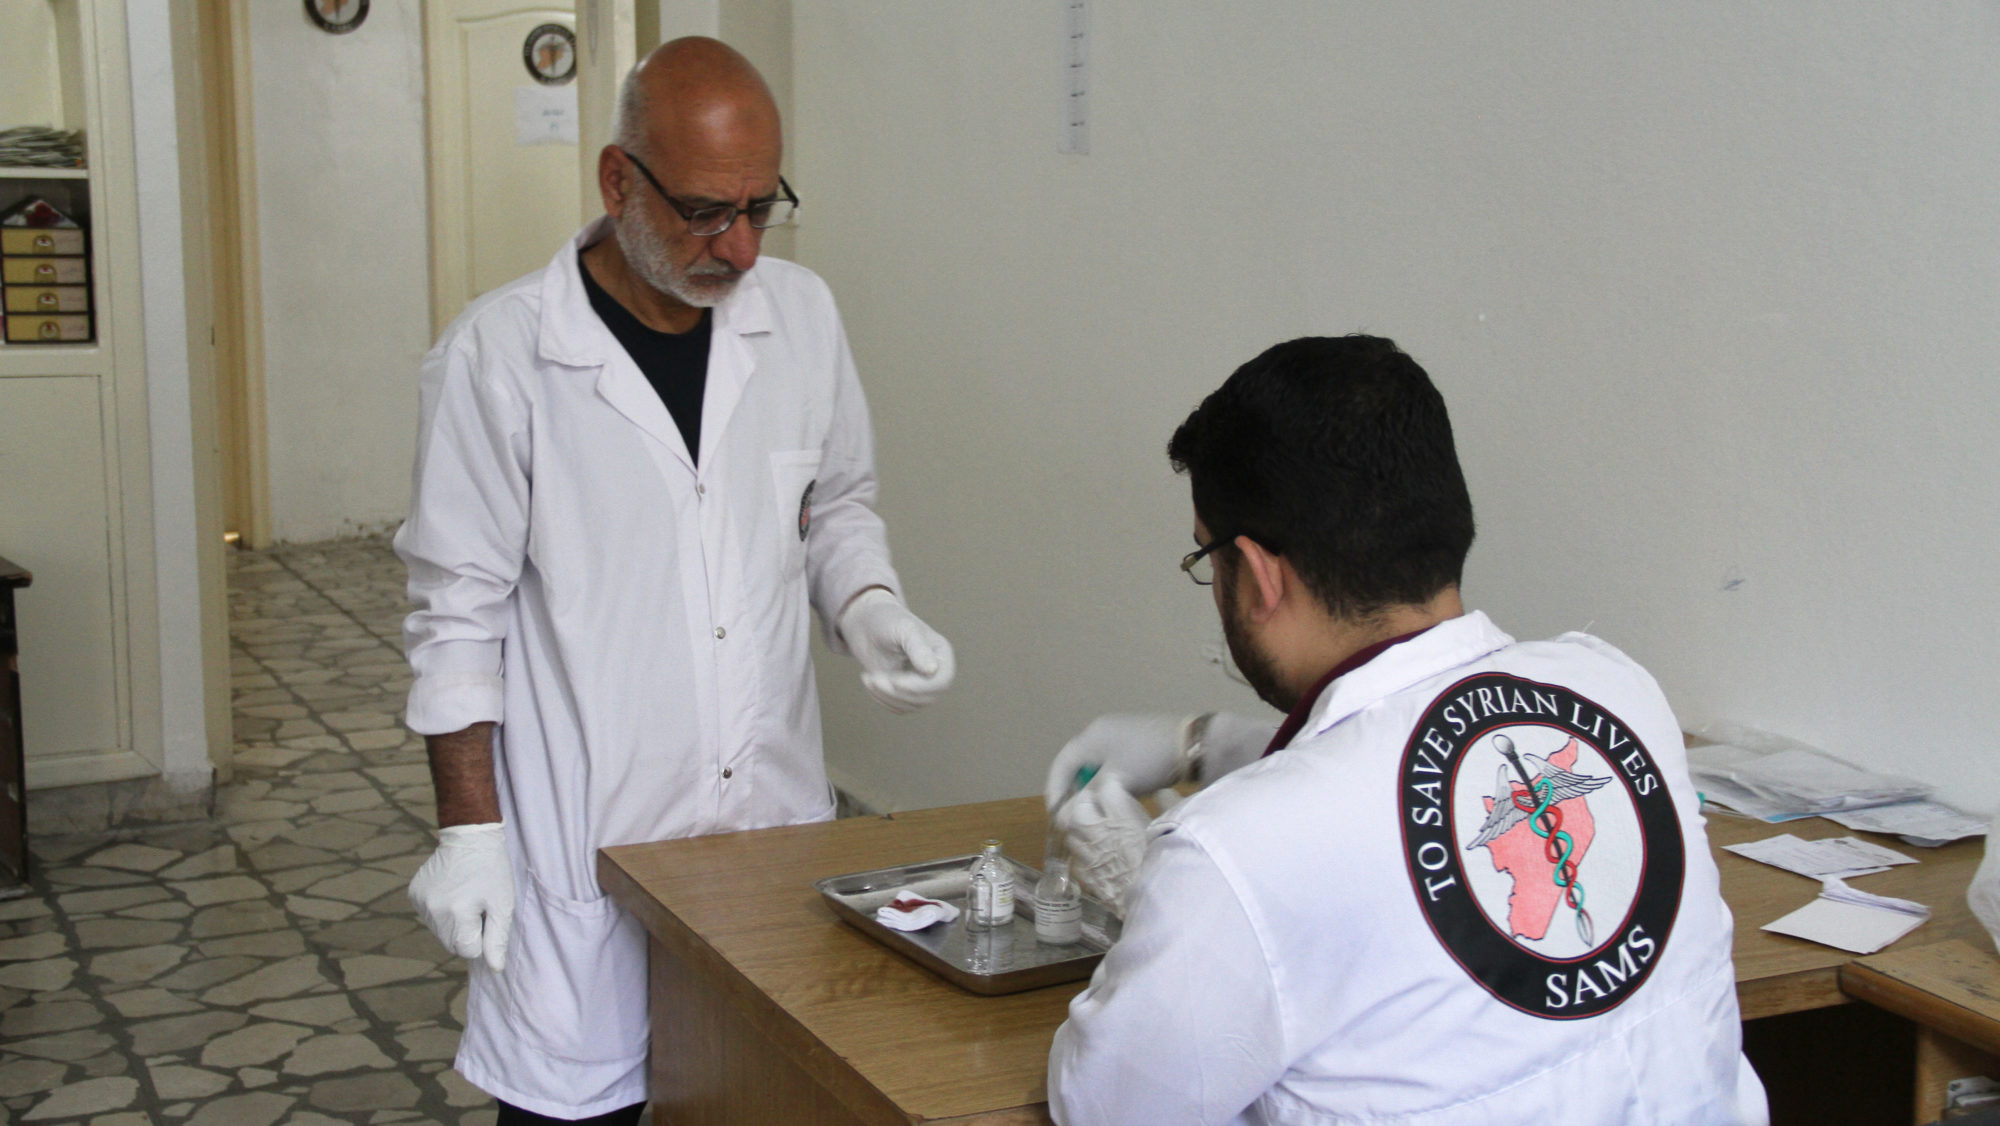 Medical staff prepare medication at the SAMS Oncology Center in Idlib, Syria. The facility is filling a gap for patients that would otherwise have to travel long distances for cancer care, or forgo treatment altogether. (Photo courtesy of SAMS)